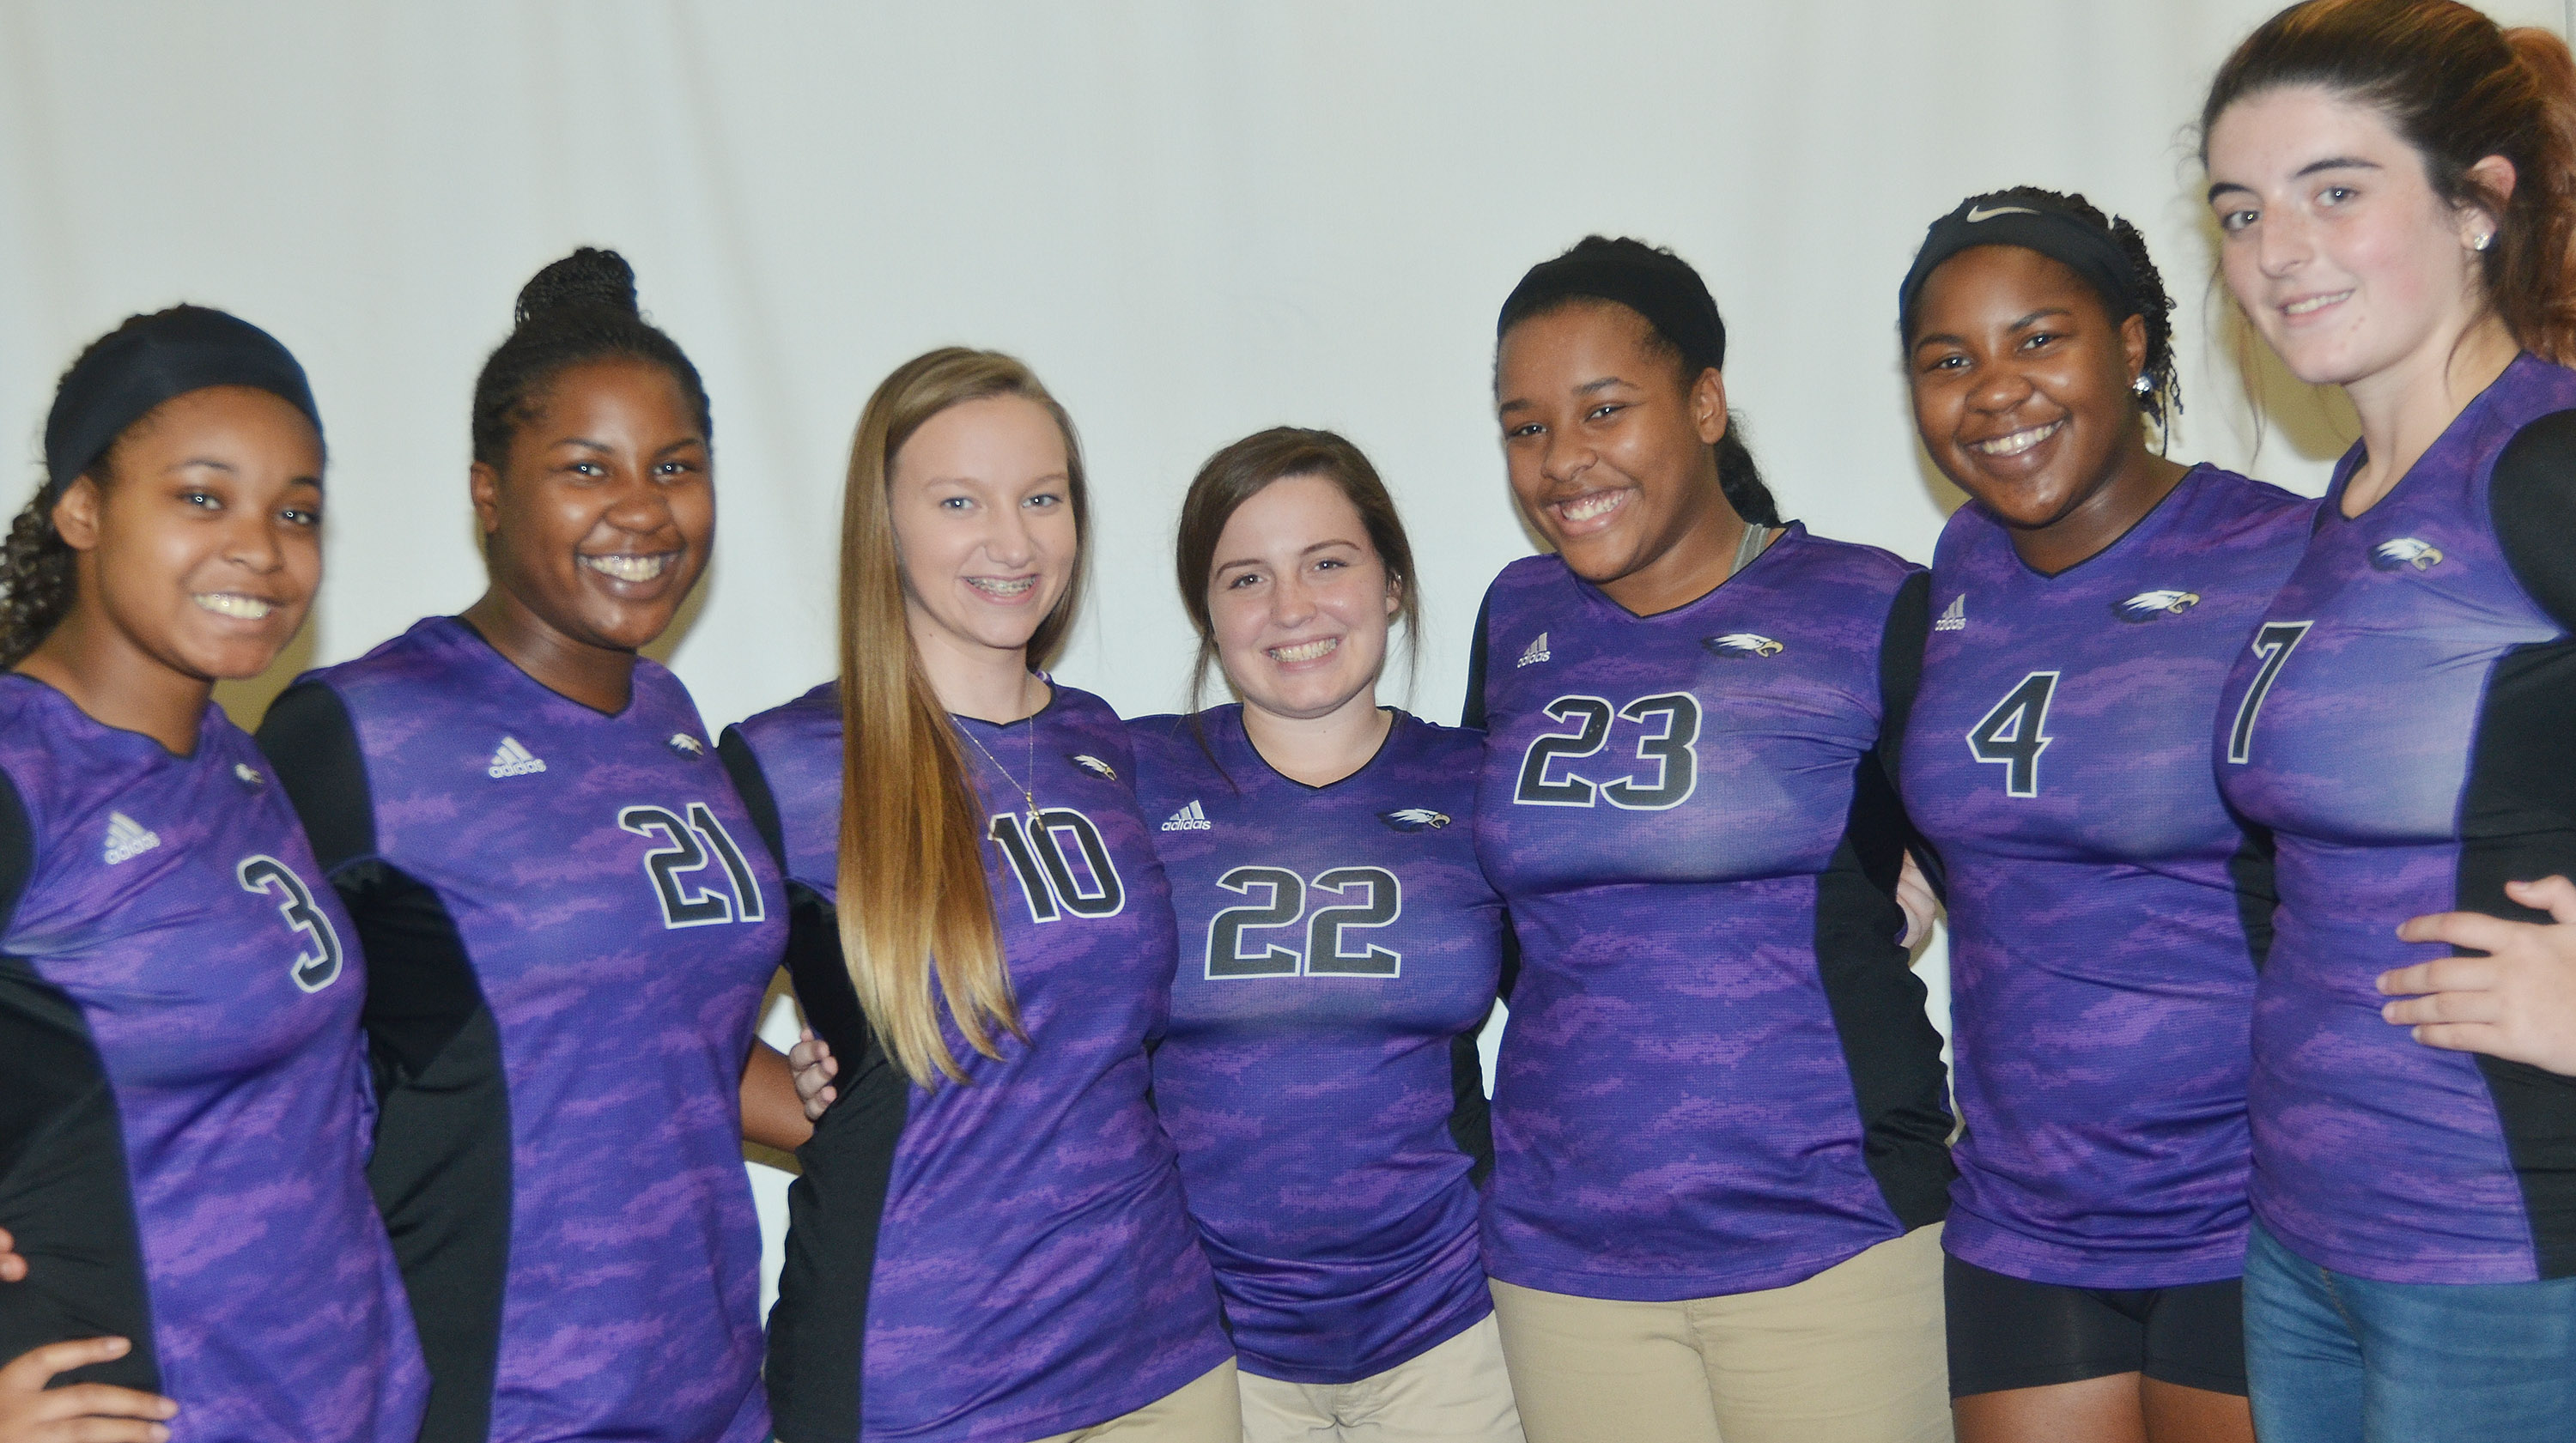 CHS volleyball senior players will be honored on Thursday, Oct. 12, at about 7:45 p.m. in the CHS gym. They are, from left, Vonnea Smith, Kiyah Barnett, Madison Dial, Caitlin Bright, Kayla Young, Nena Barnett and Amanda Miles.